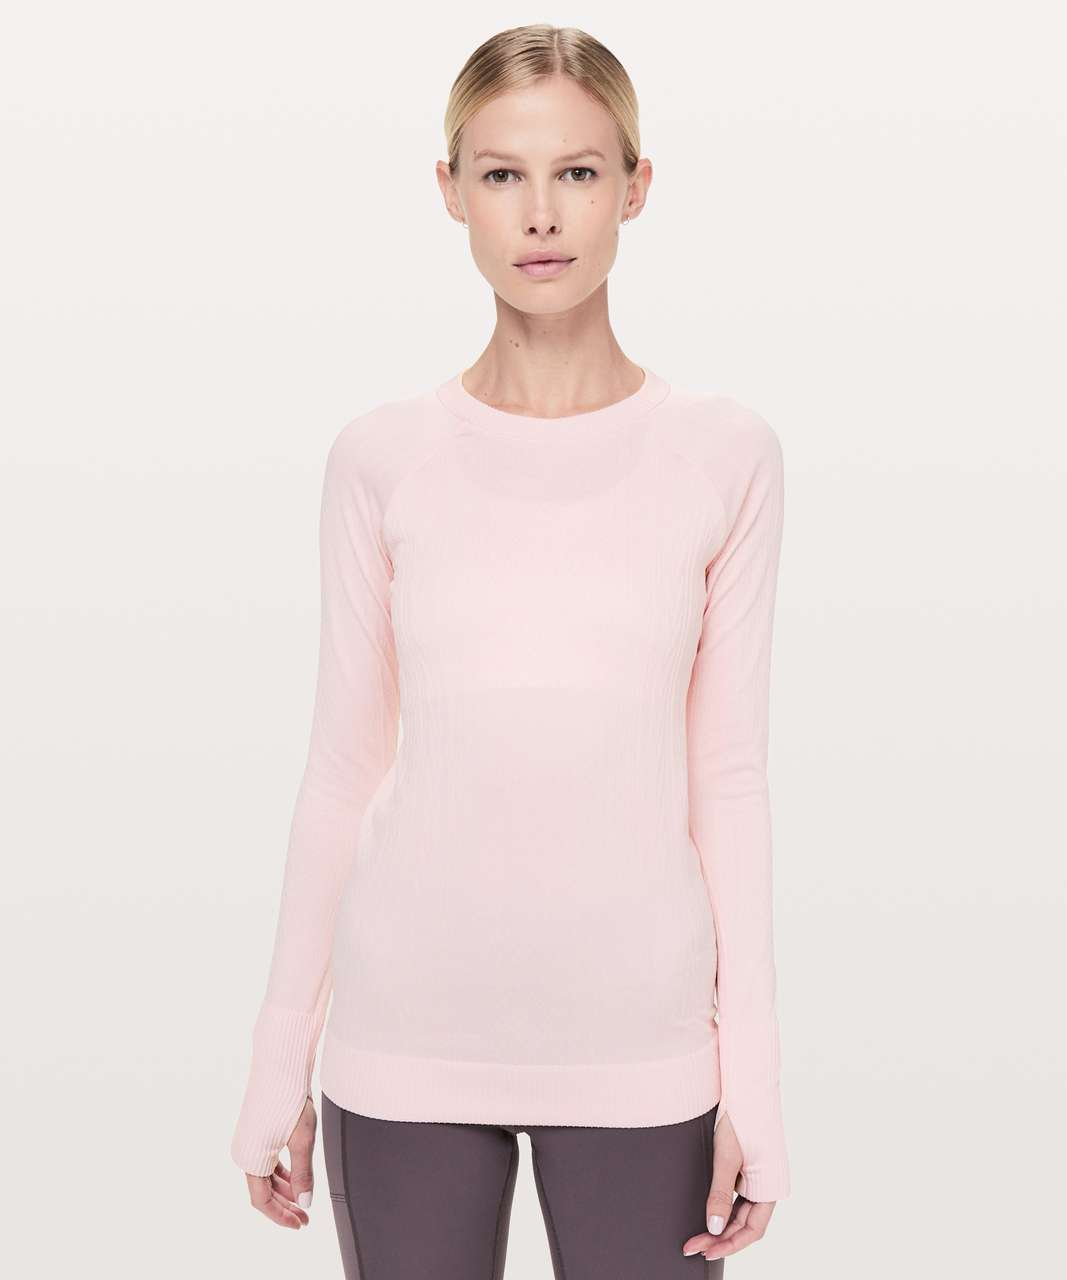 ad55a8fe351f2 Lululemon Rest Less Pullover - Blissful Pink   Blissful Pink - lulu fanatics